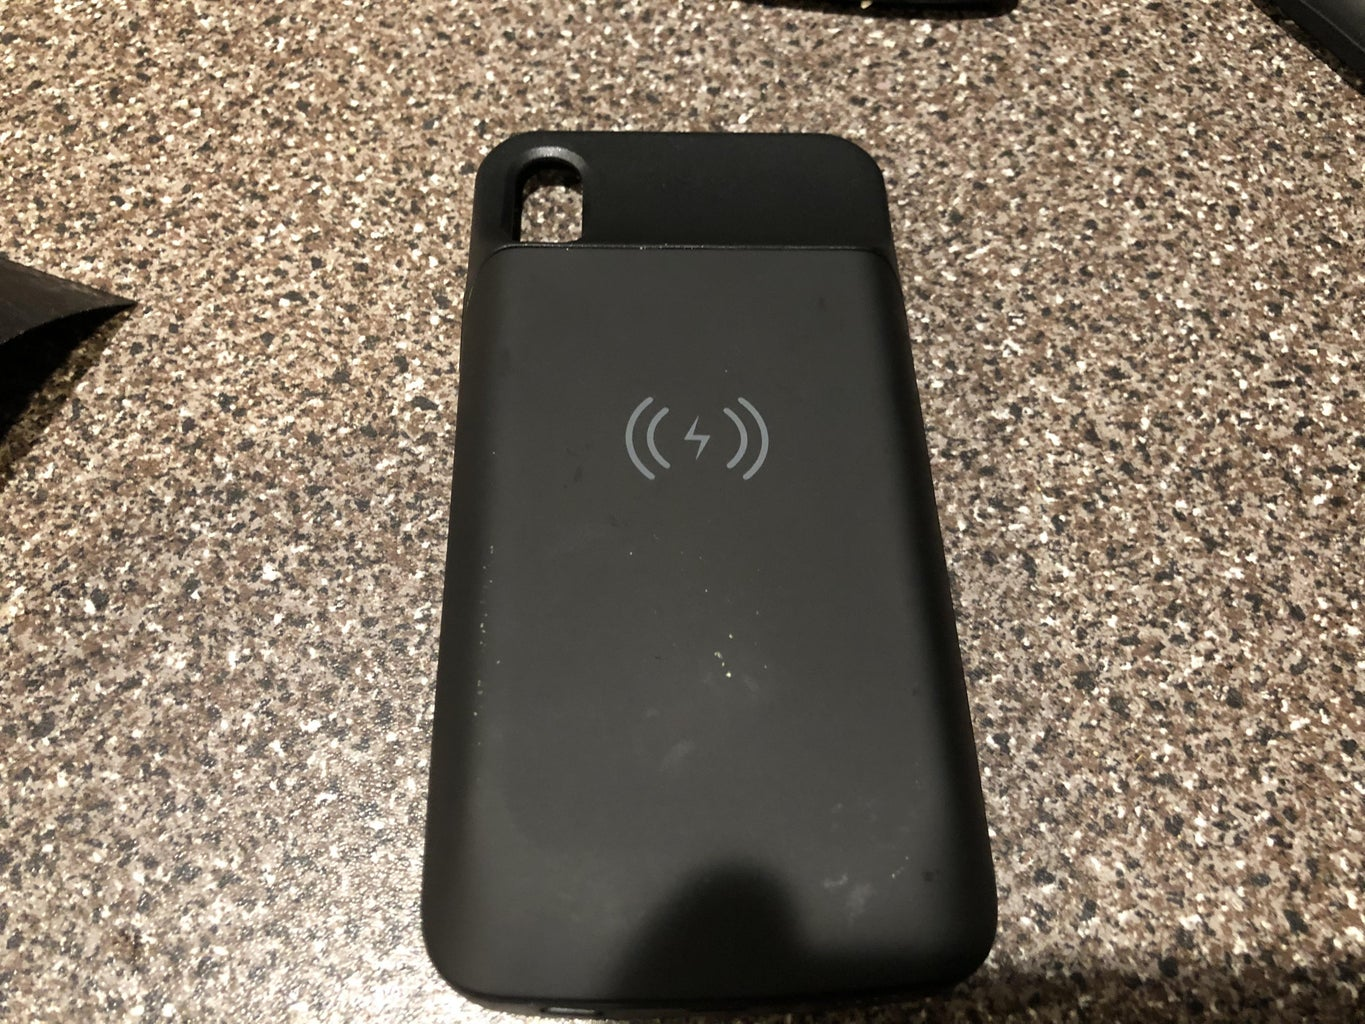 Re-apply the Sticker on the Inside of the Case